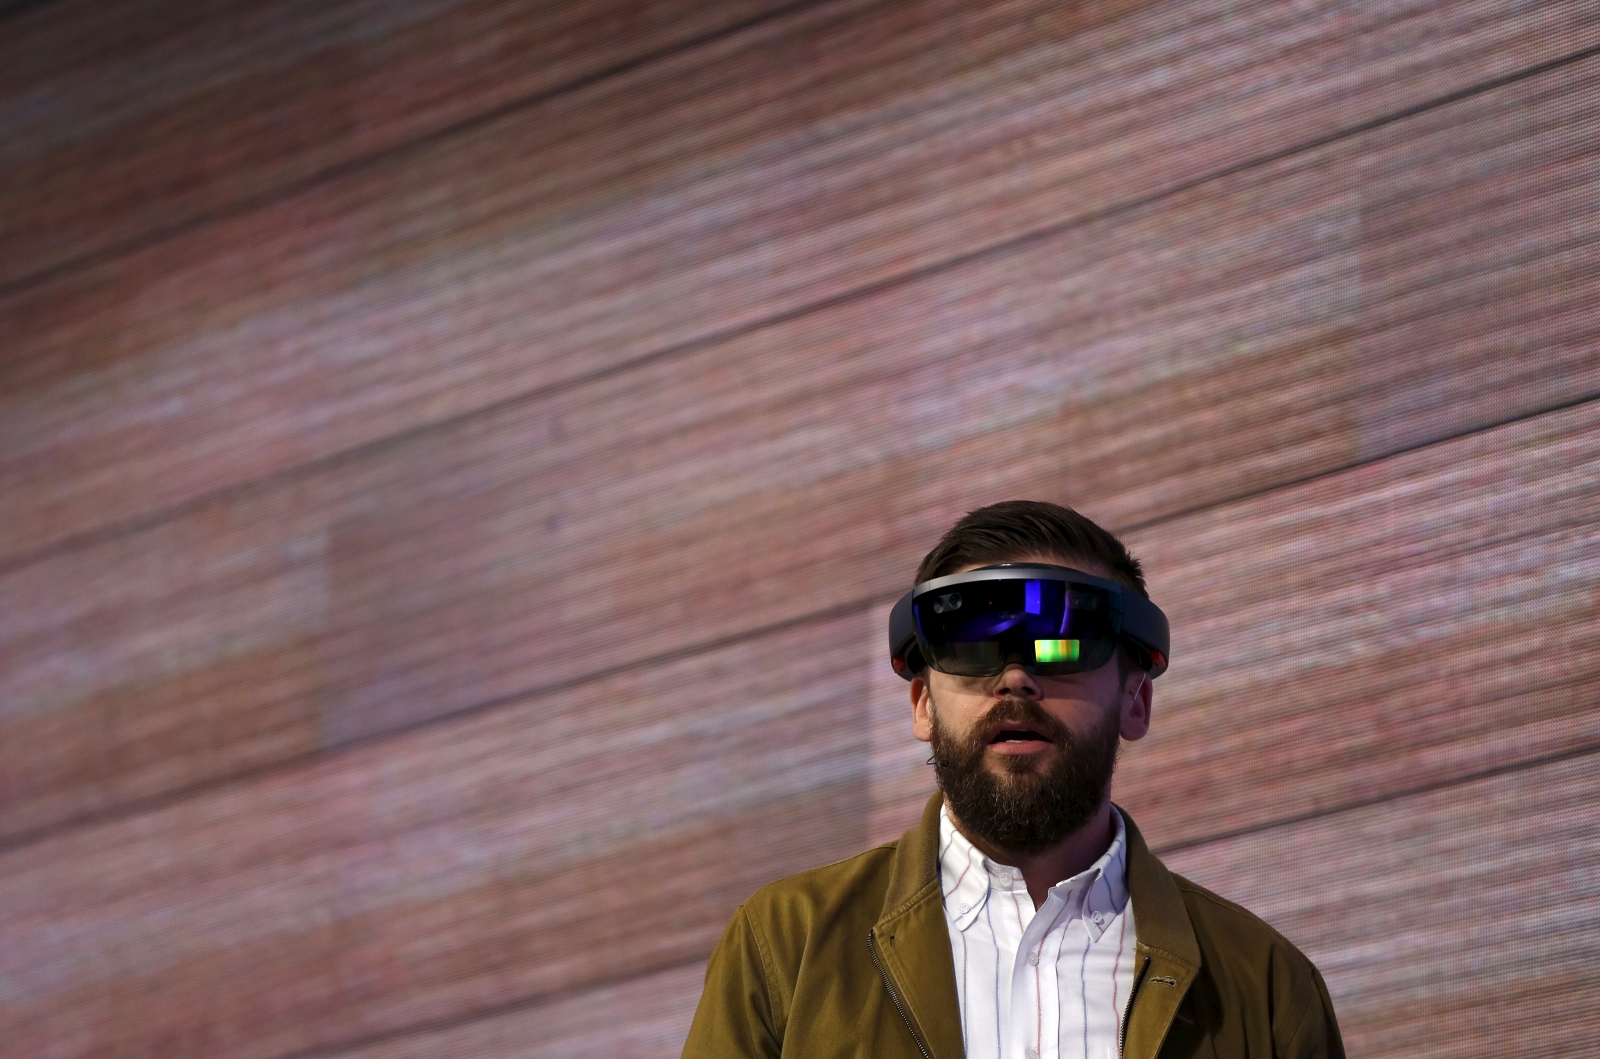 HoloLens Hands On Review